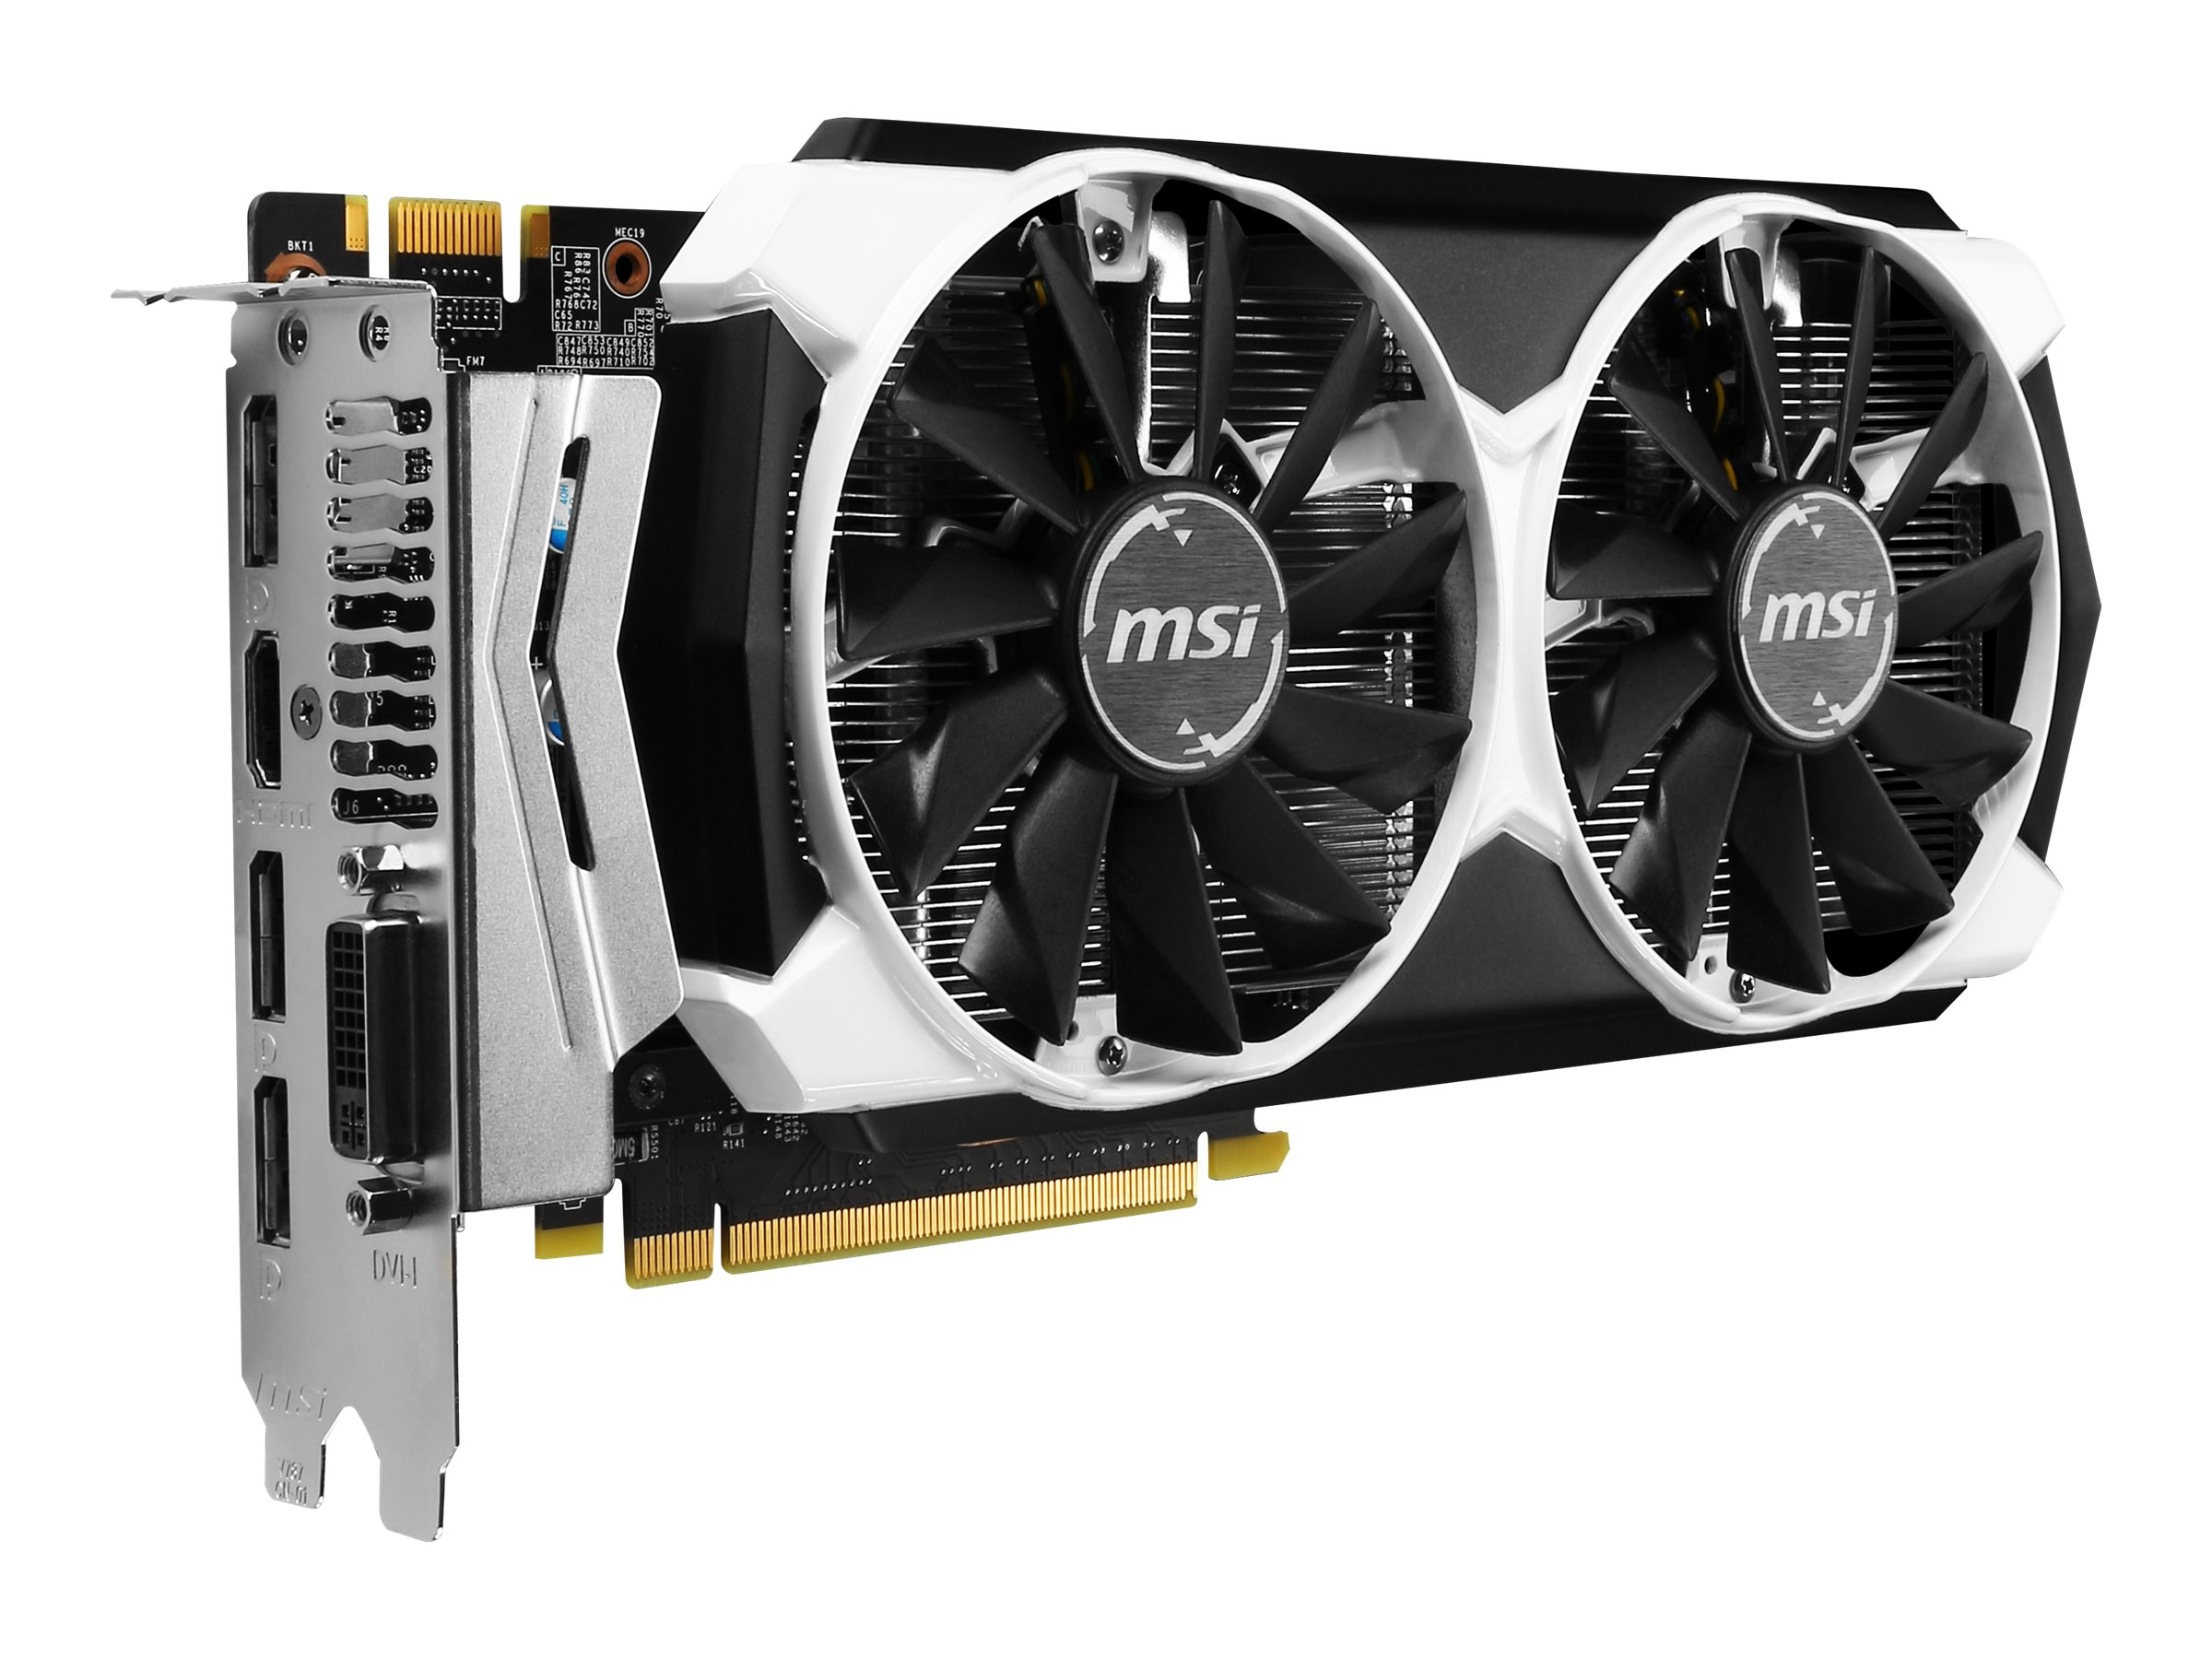 Microstar GeForce GTX 960 PCIe 3.0 Overclocked Graphics Card, 2GB GDDR5, GTX 960 2GD5T OC, 18363782, Graphics/Video Accelerators